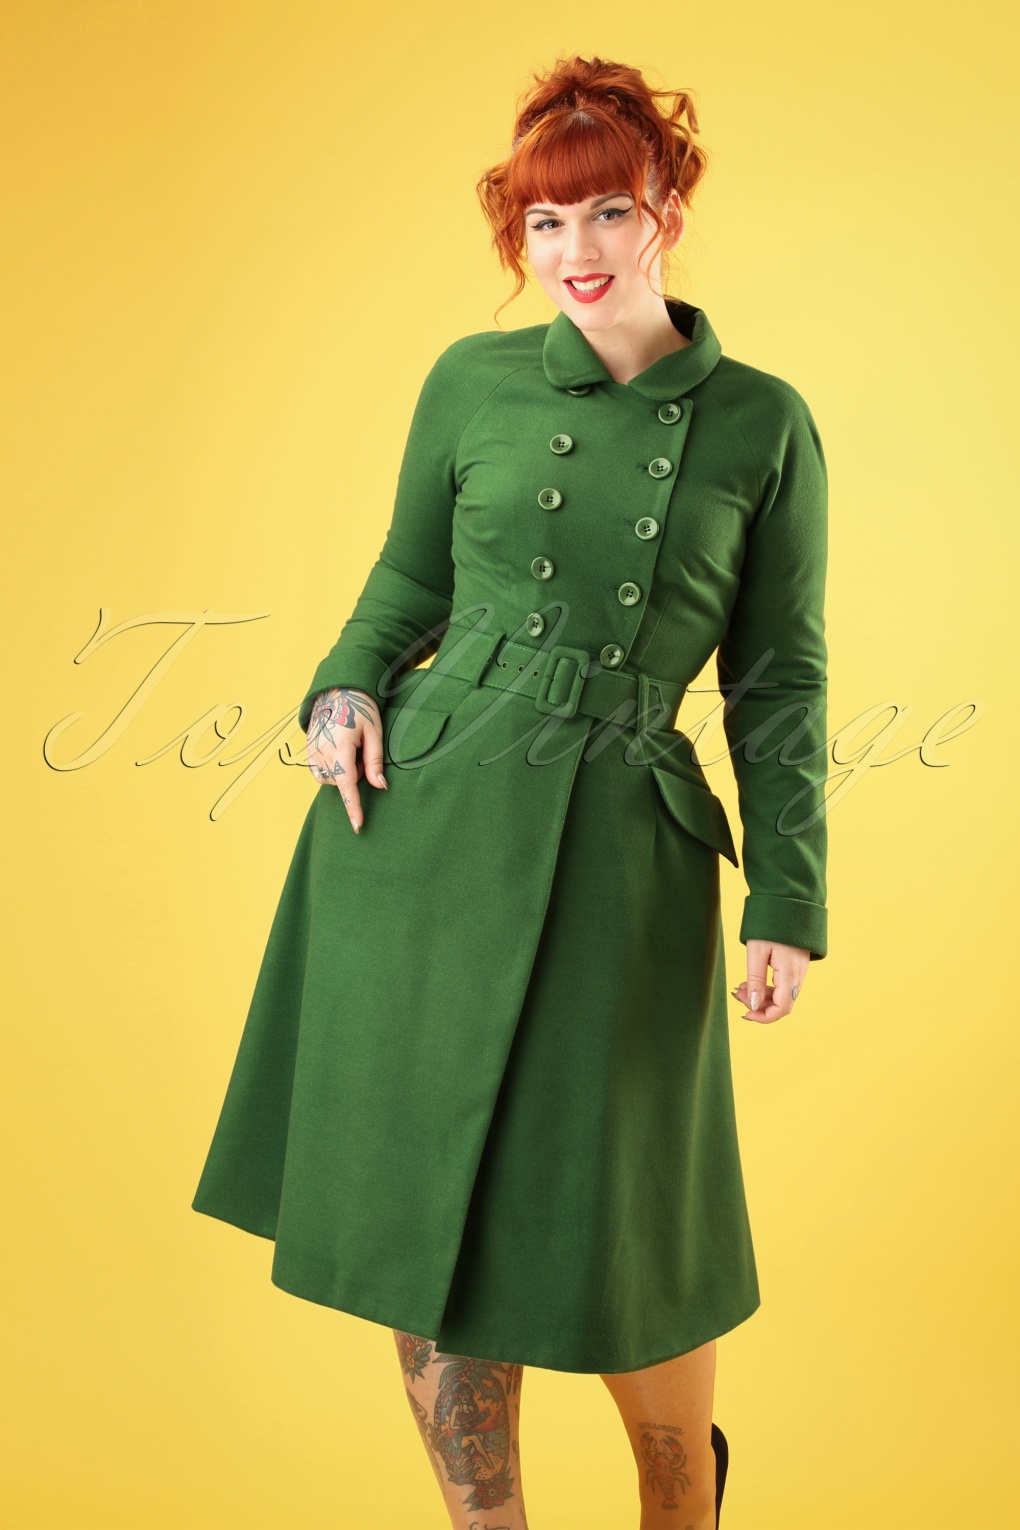 Vintage Coats & Jackets | Retro Coats and Jackets 50s Addy Coat in Green £95.54 AT vintagedancer.com